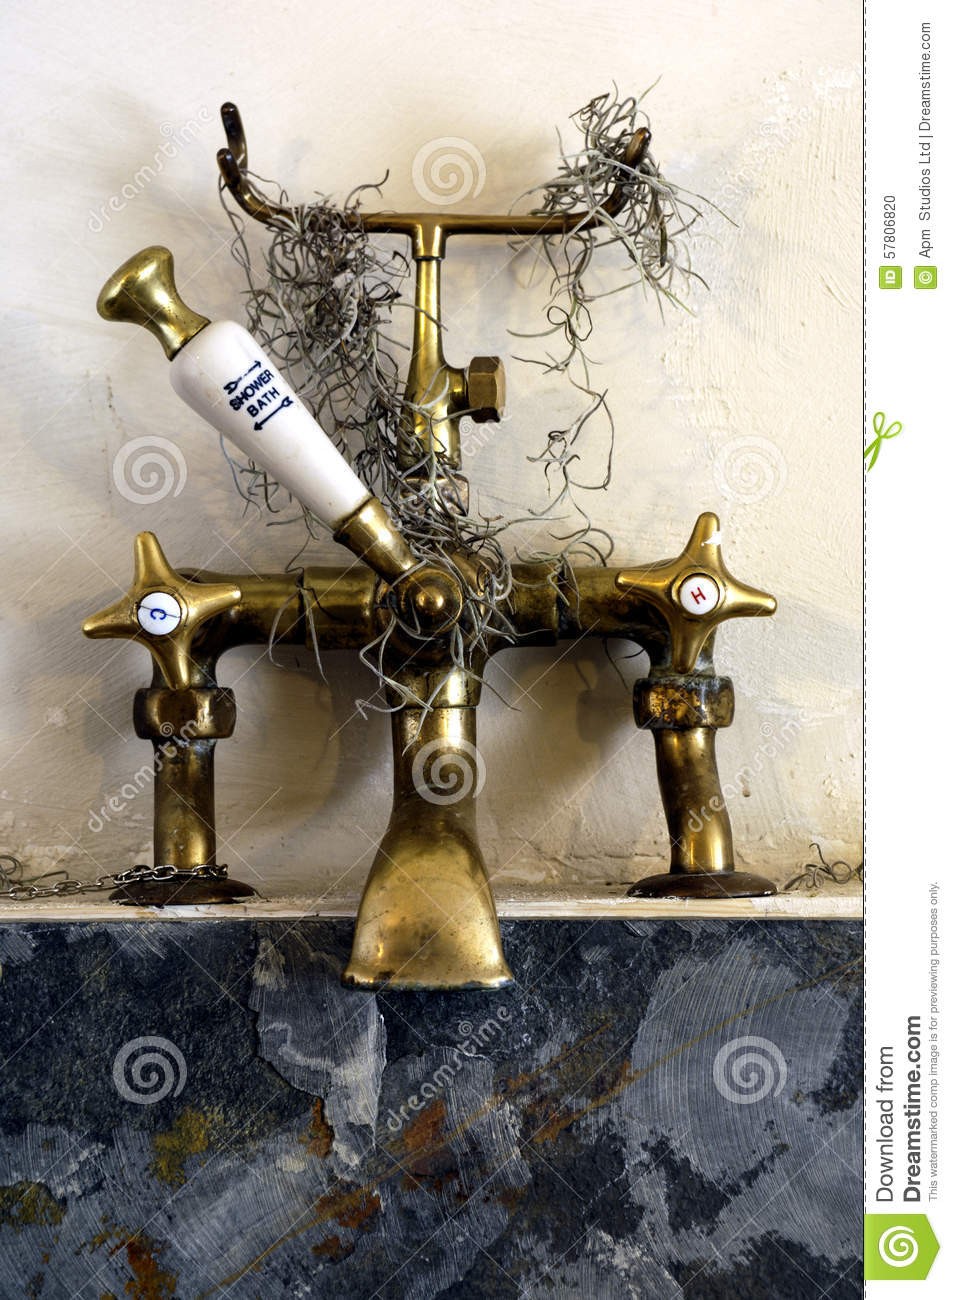 Old bath taps stock photo. Image of object, house, beautiful ...